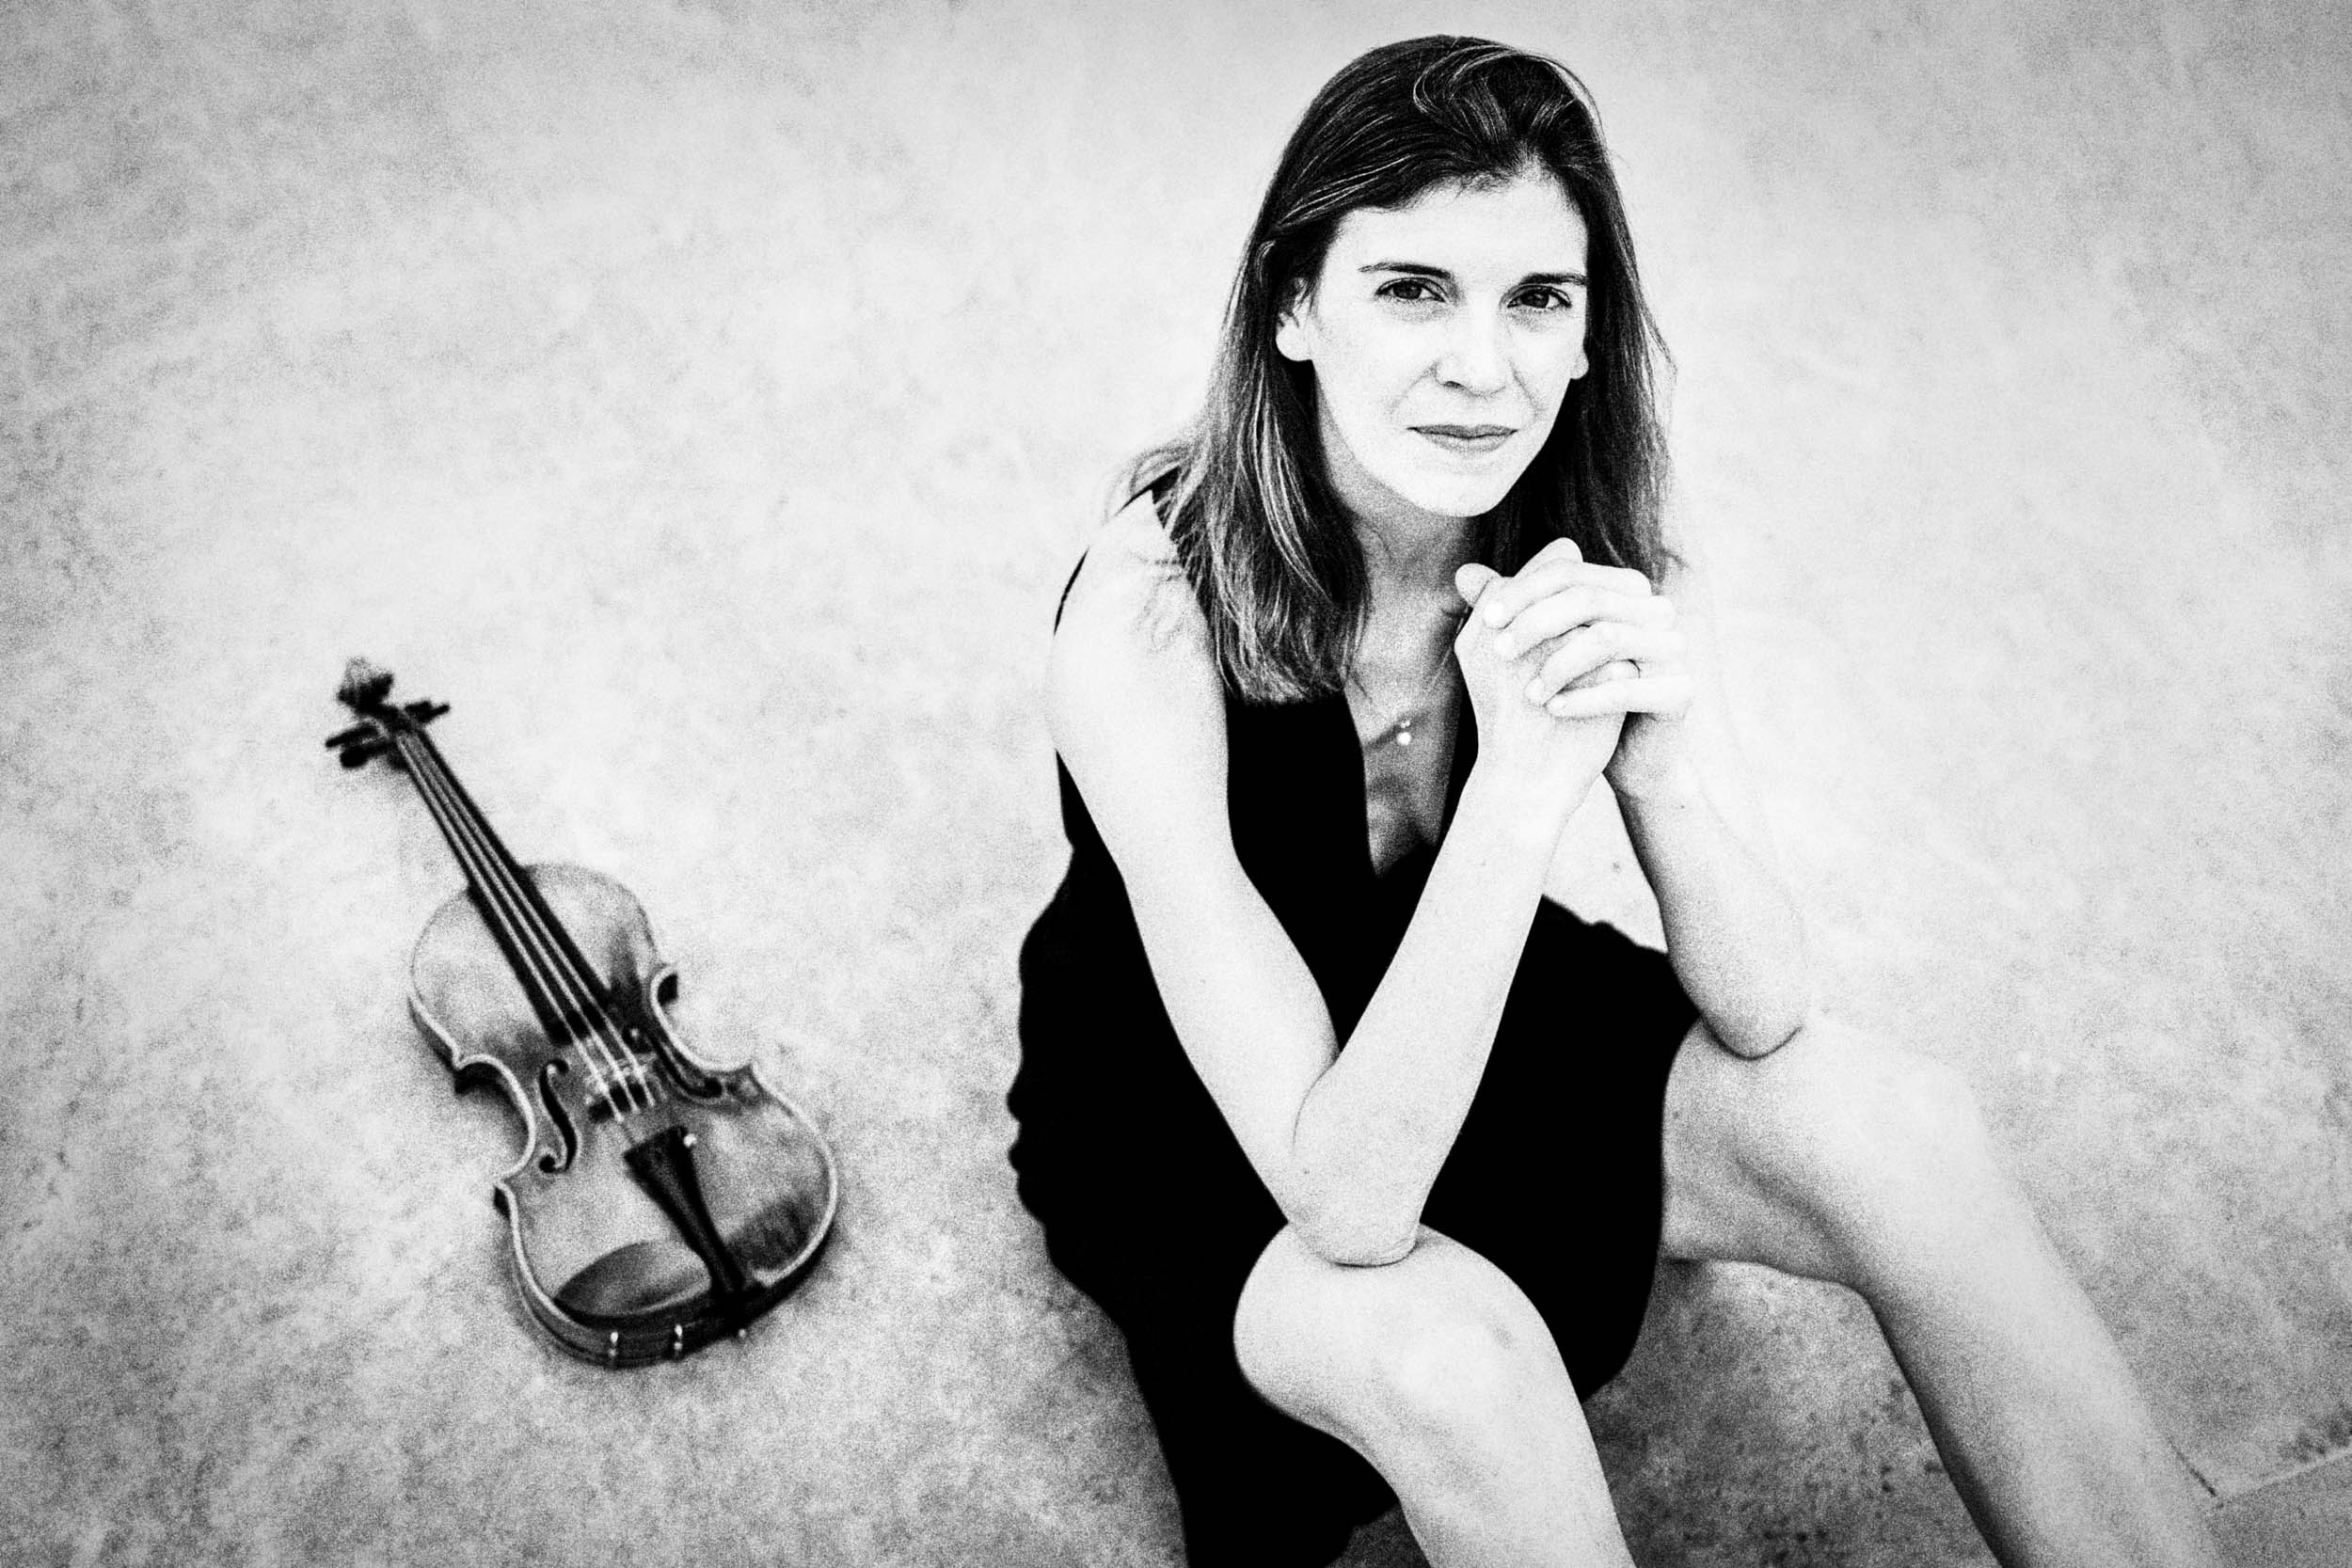 Jane Kittredge, violinist, 2018